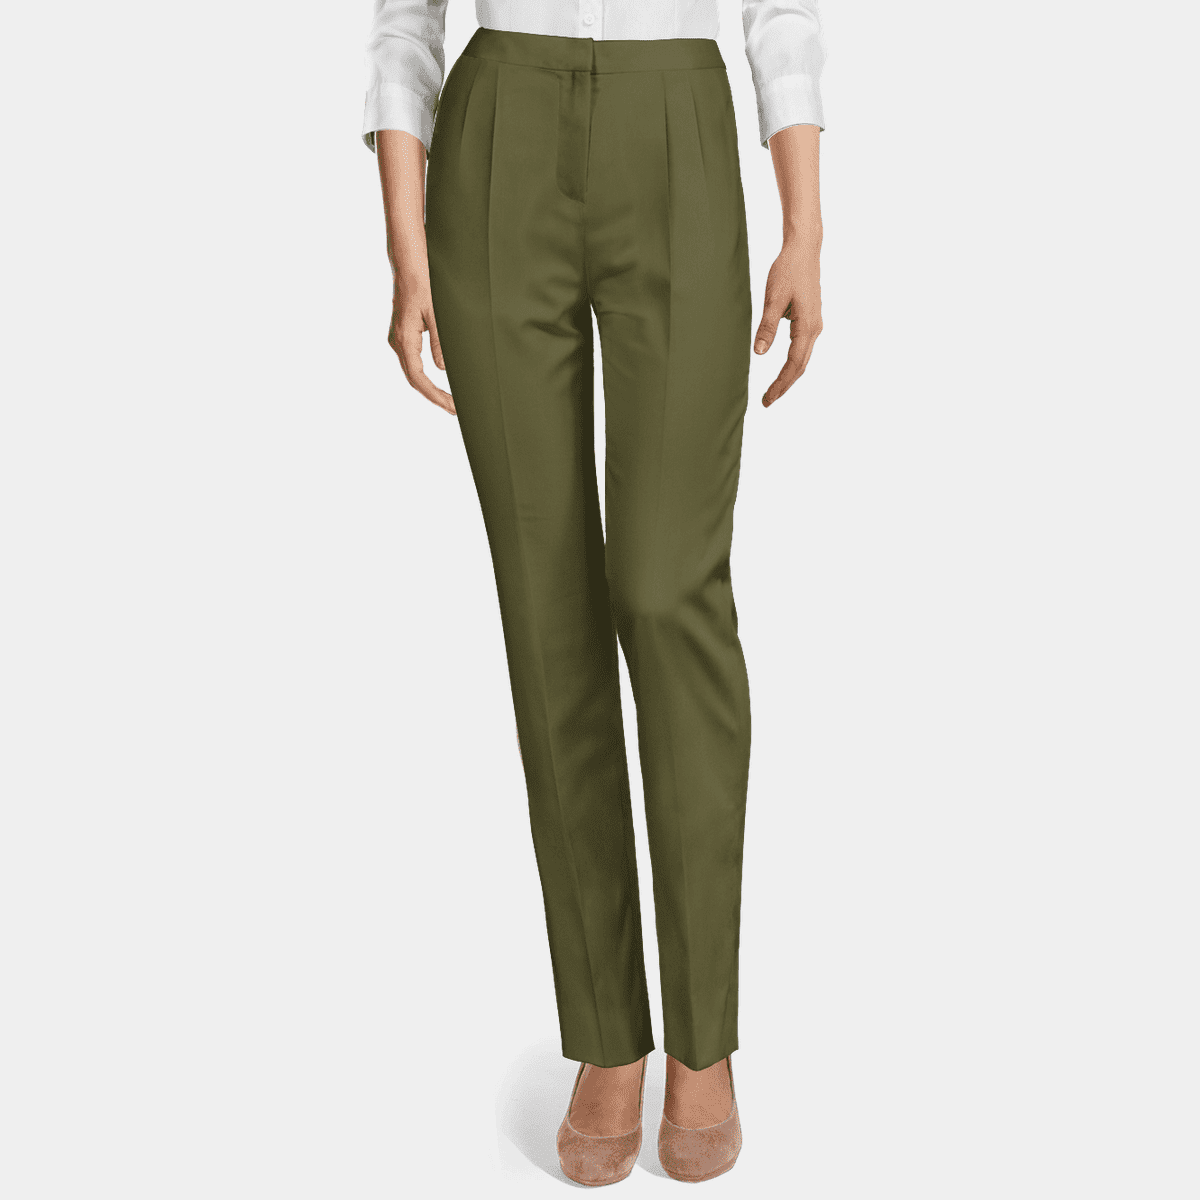 Army Green stretch high waisted pleated Women Dress Trouser 69€ | Sumissura